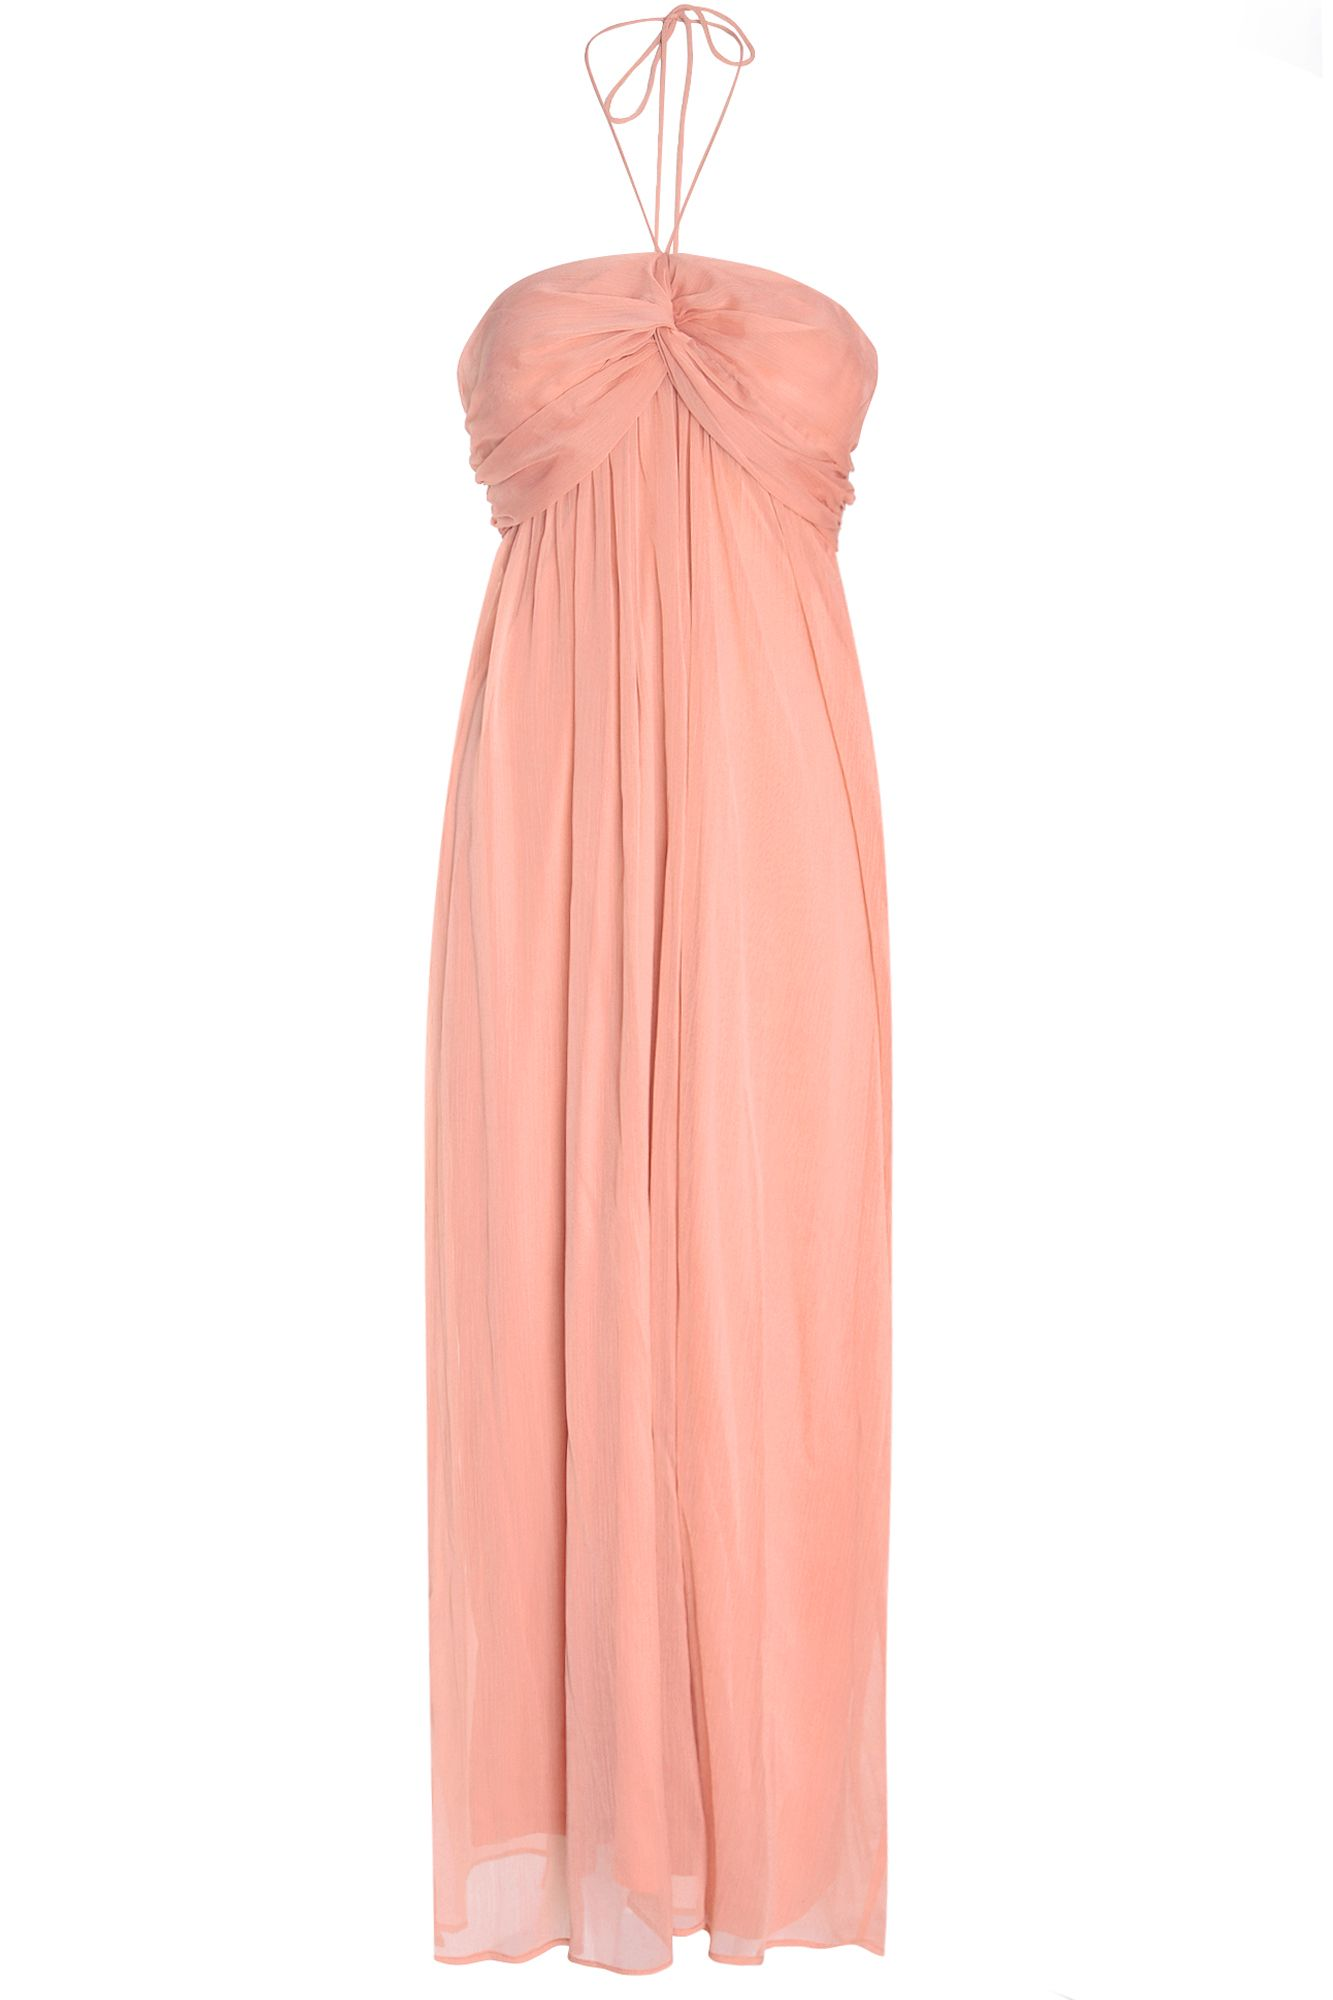 Atelier 61 Atelier 61 Ruched Halterneck Maxi Dress, Orange